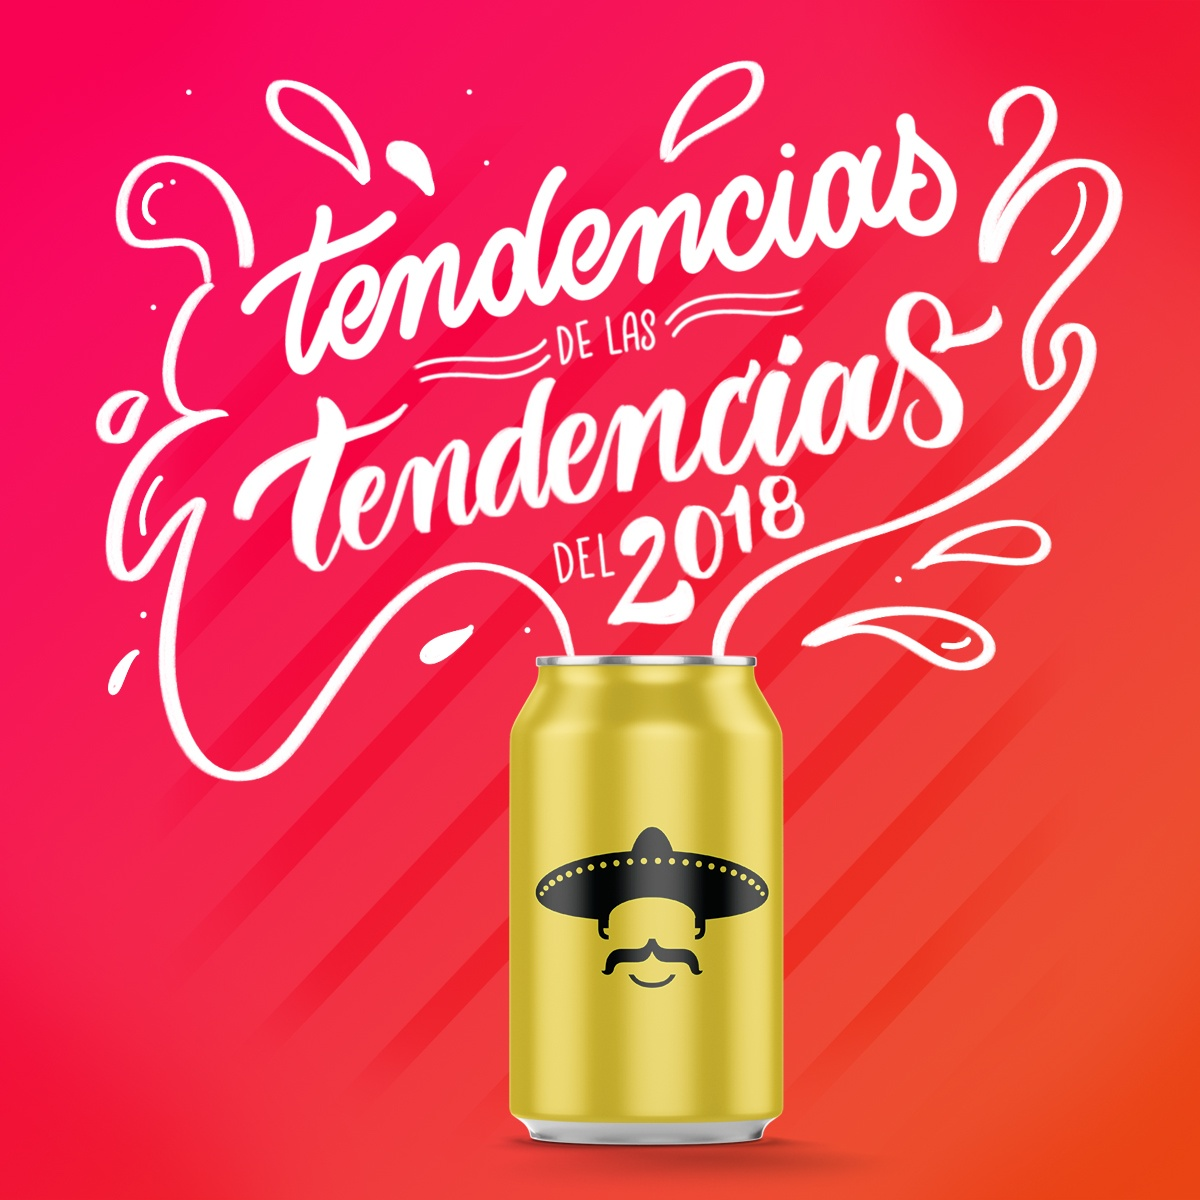 Tendencias de las tendencias 2018